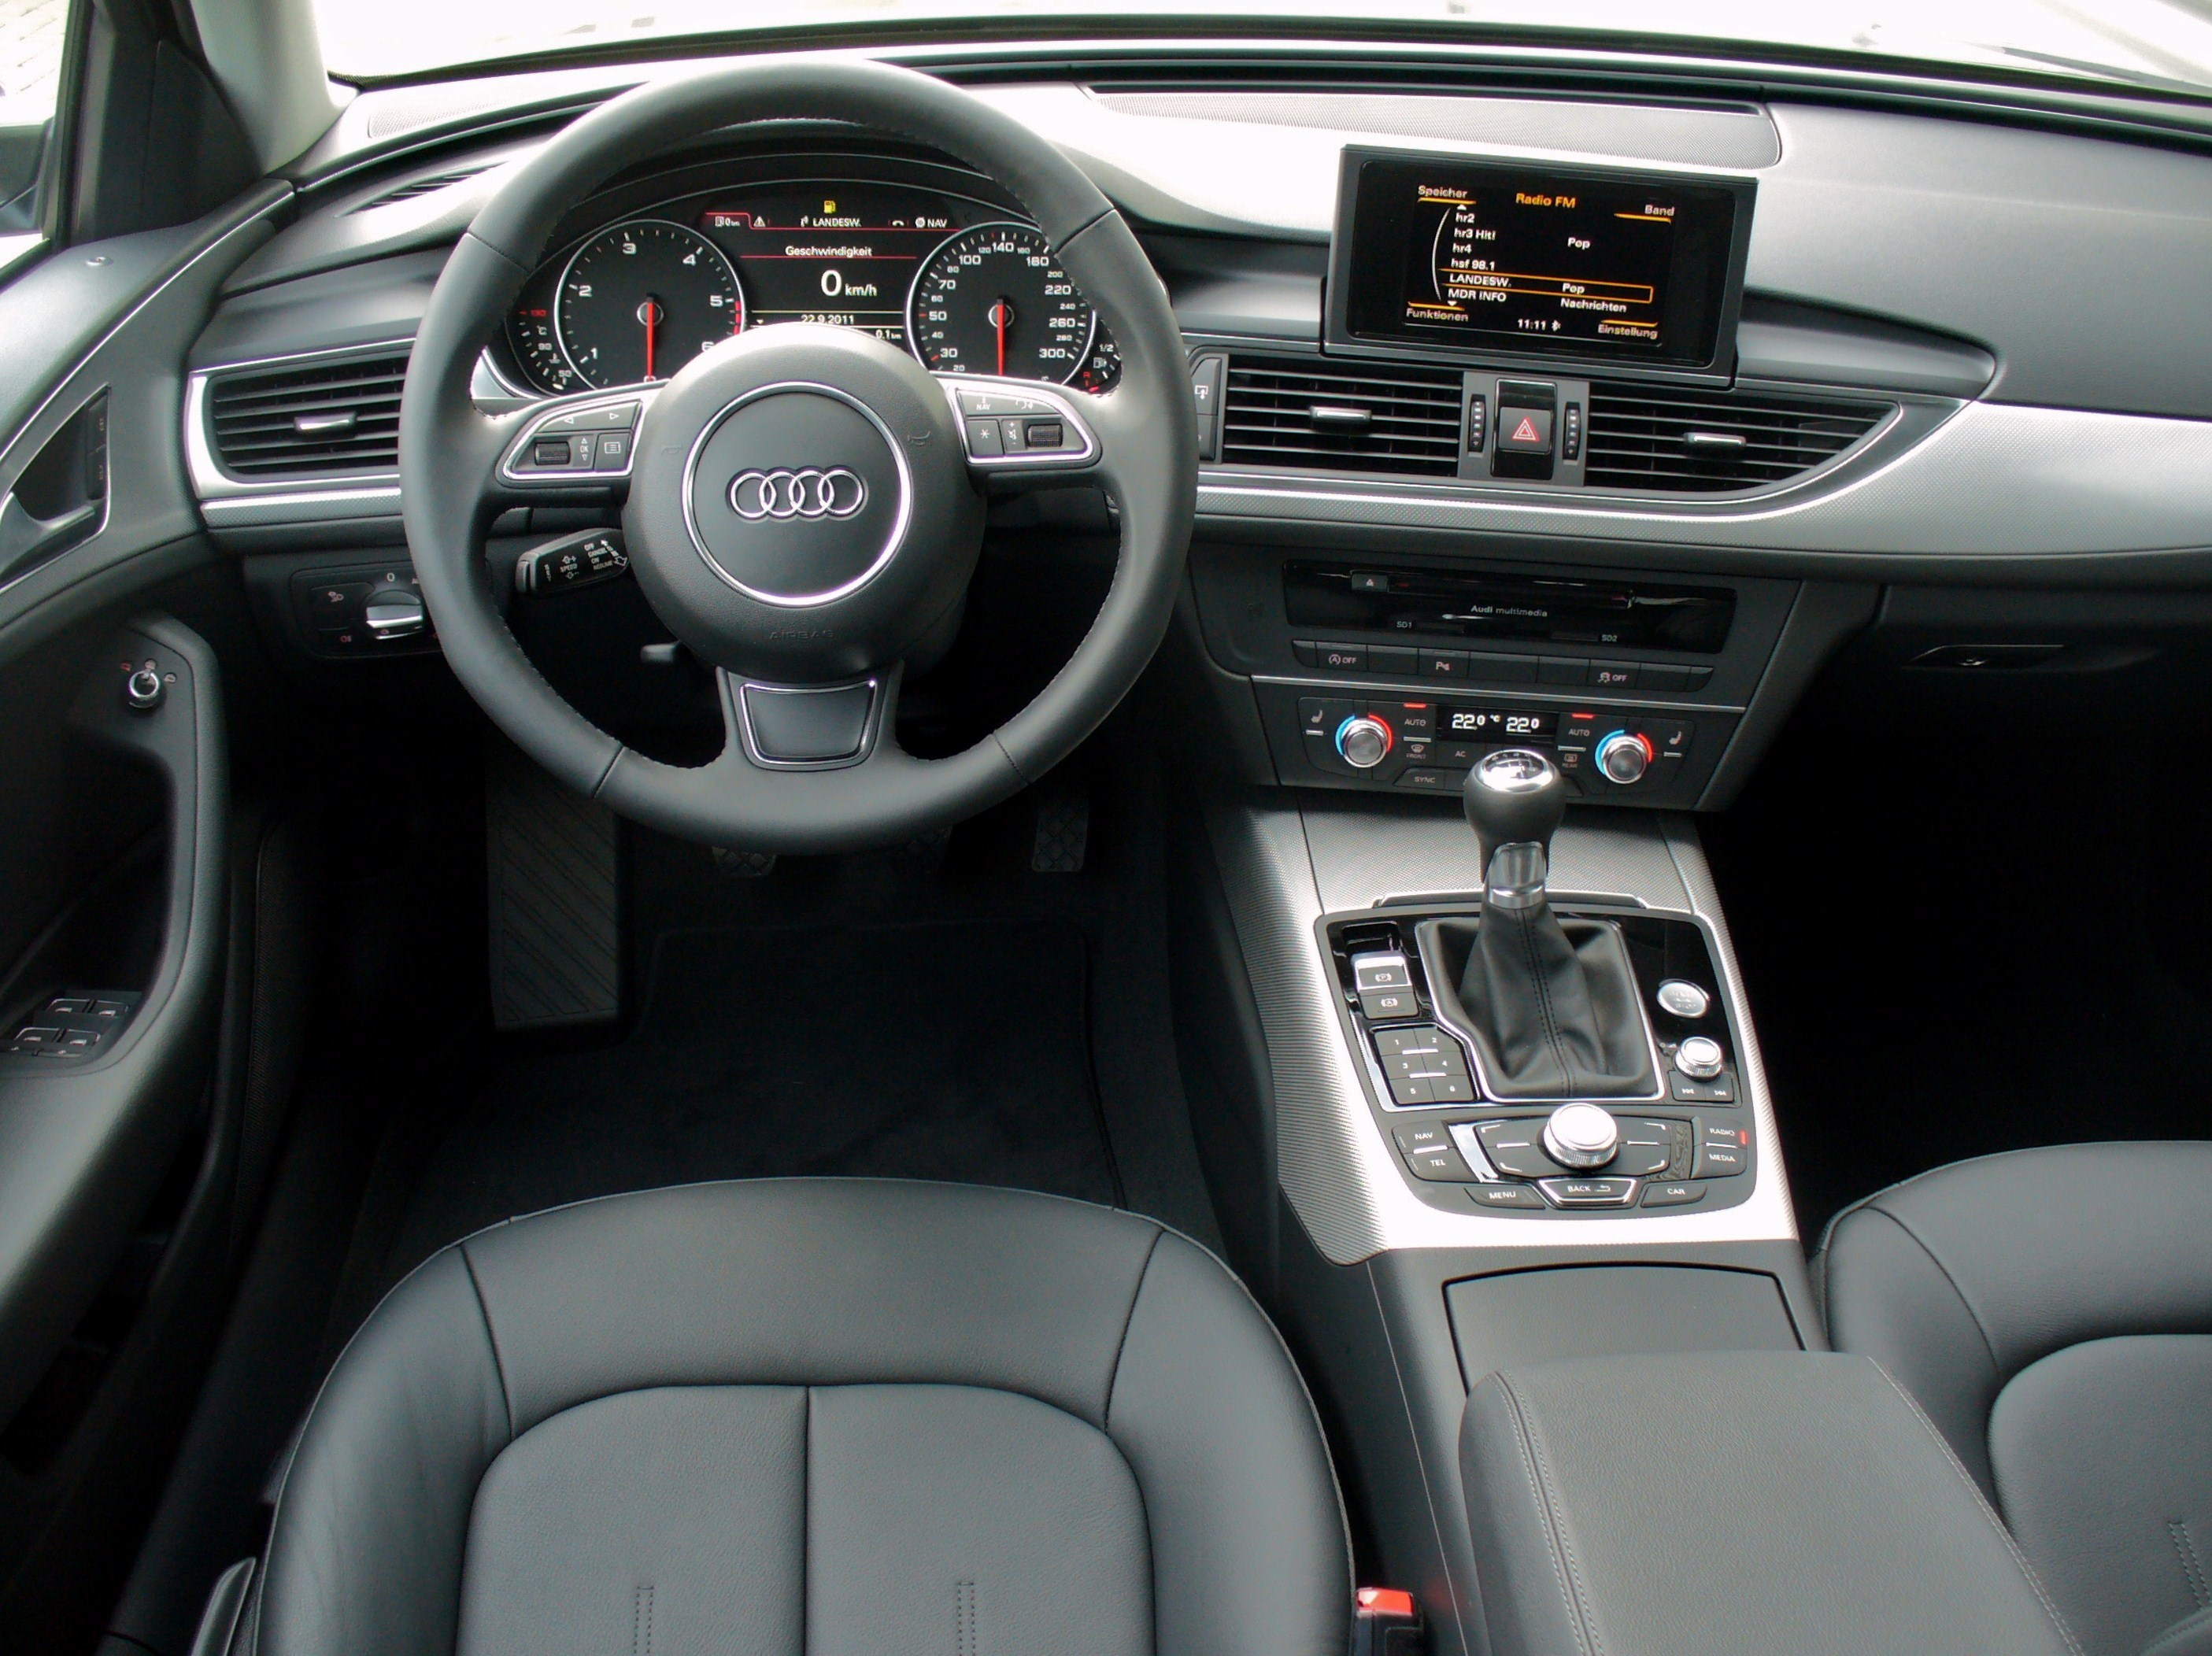 file audi a6 avant 2 0 tdi dakotagrau interieur jpg wikimedia commons. Black Bedroom Furniture Sets. Home Design Ideas